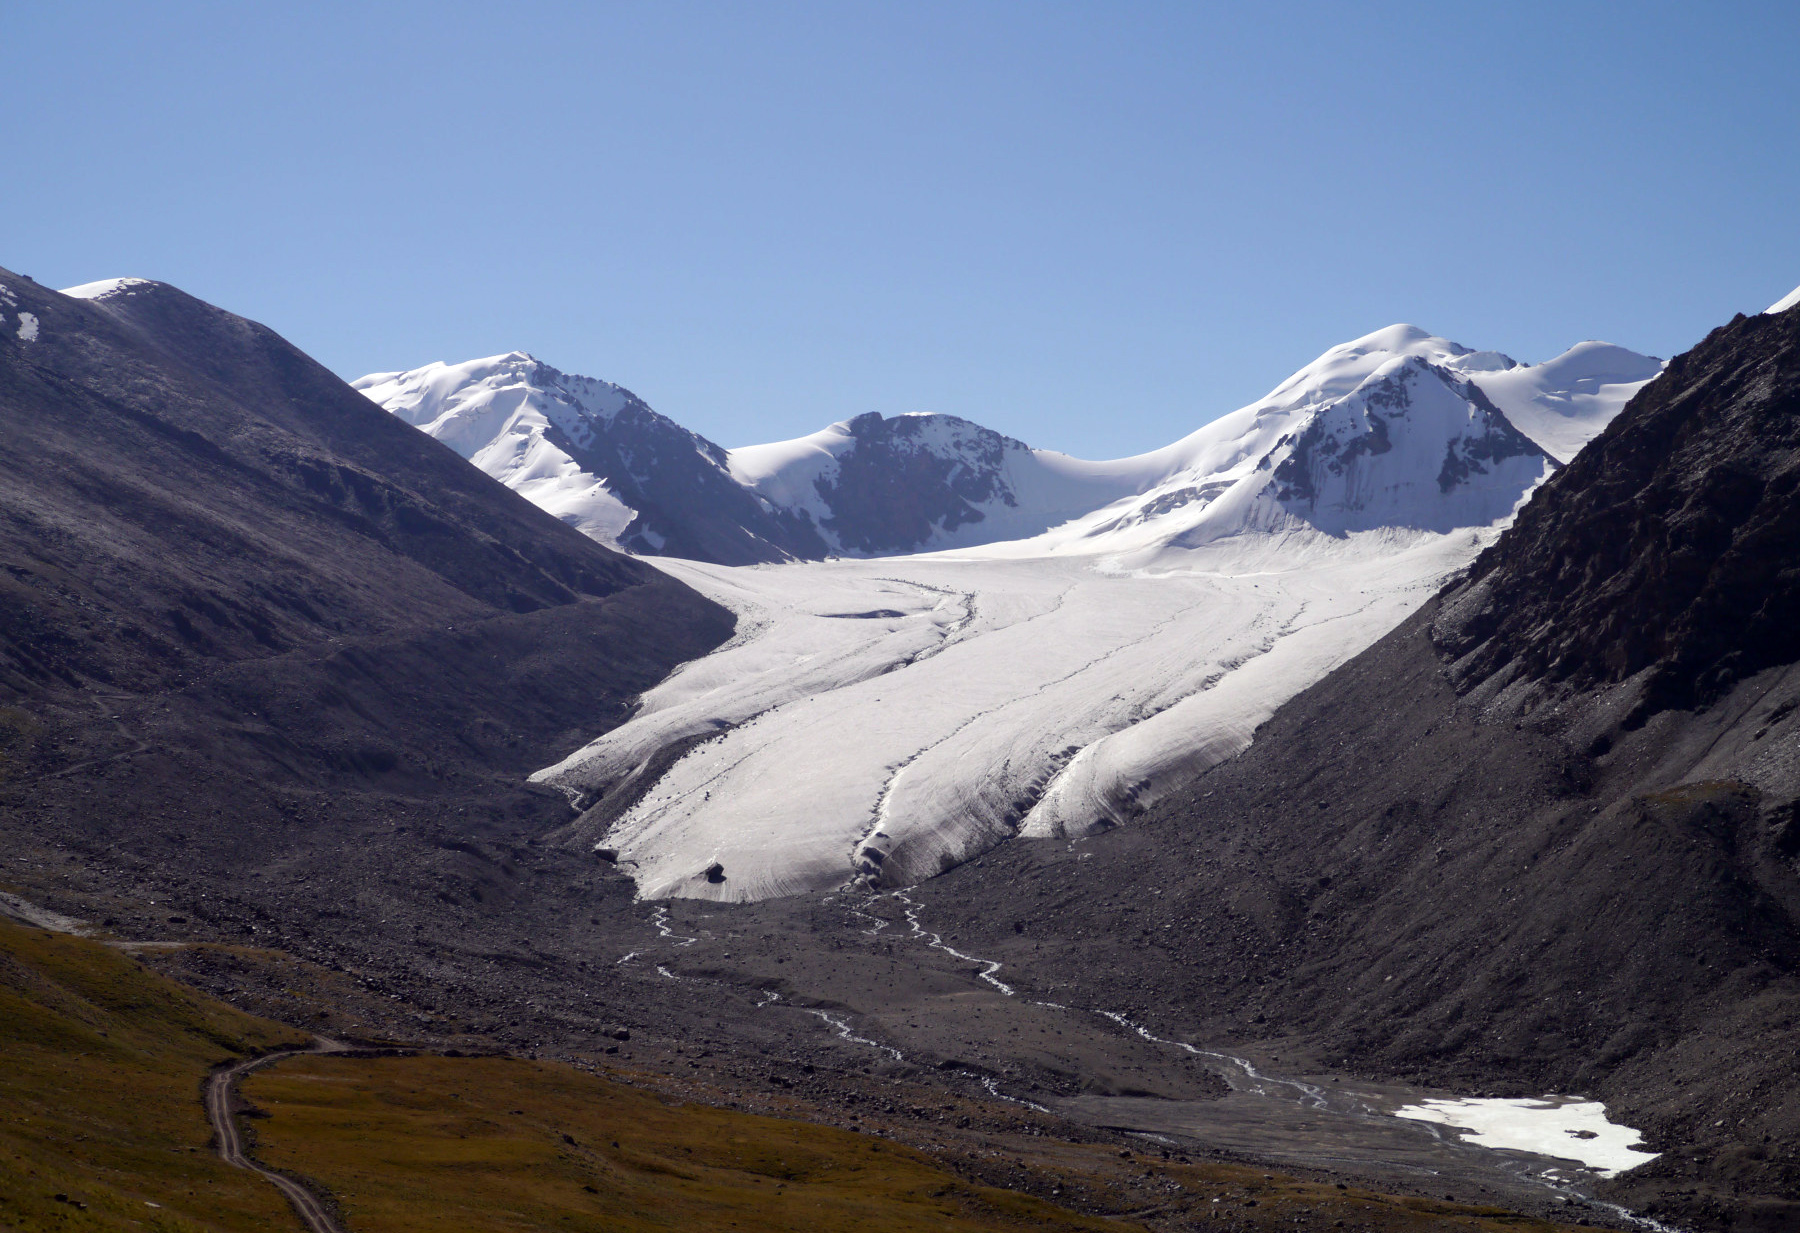 Melting Tibet glaciers may lead to climate refugees in downstream countries